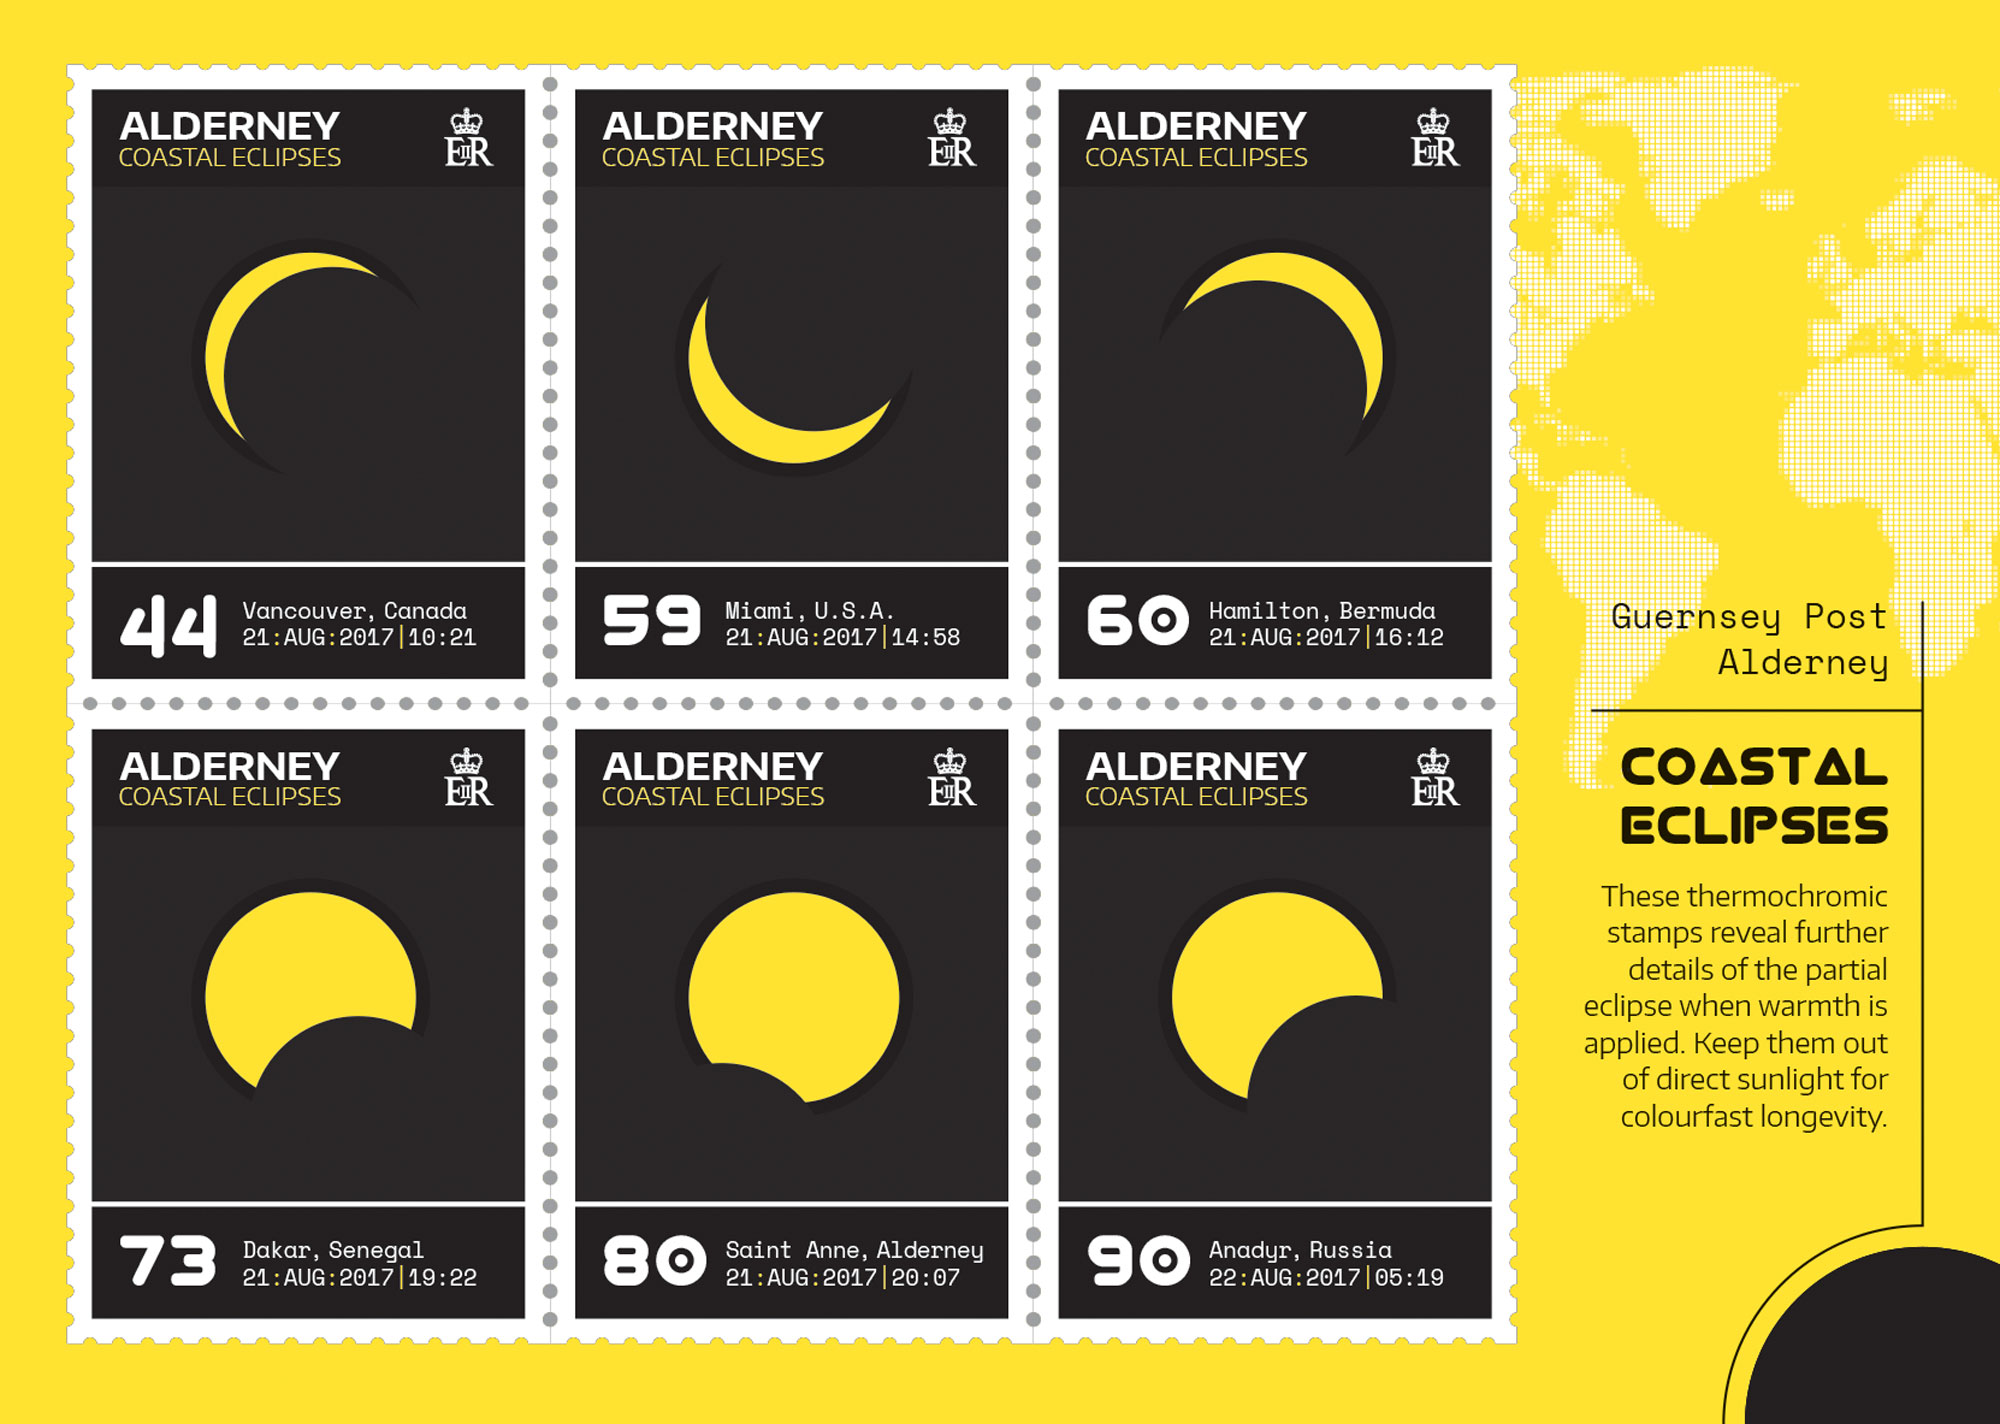 Guernsey Post celebrates total eclipse with image-changing stamps